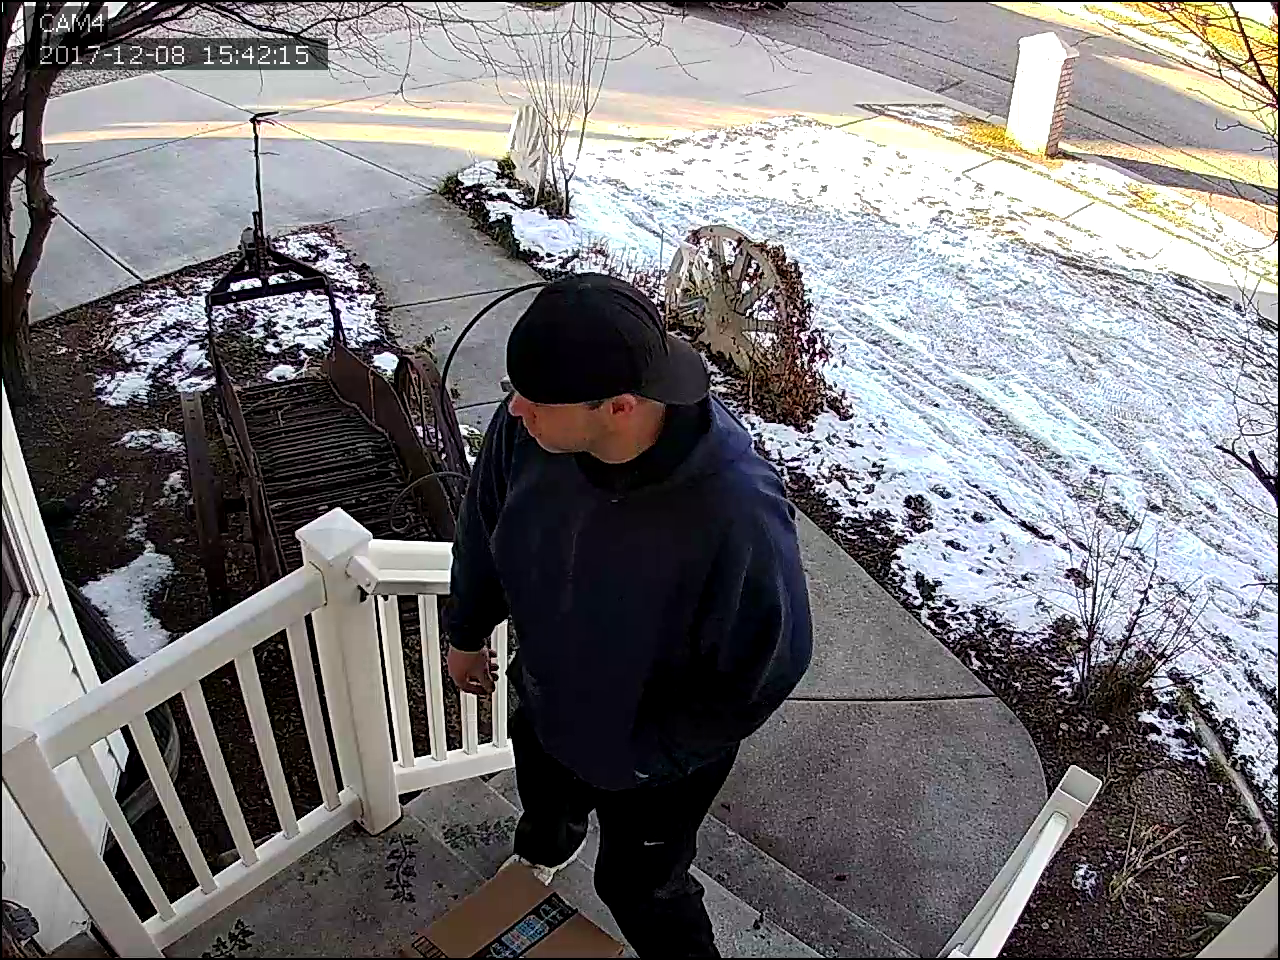 Thief caught on security camera stealing Christmas parcel from front door (Photo: Justin McFarland)